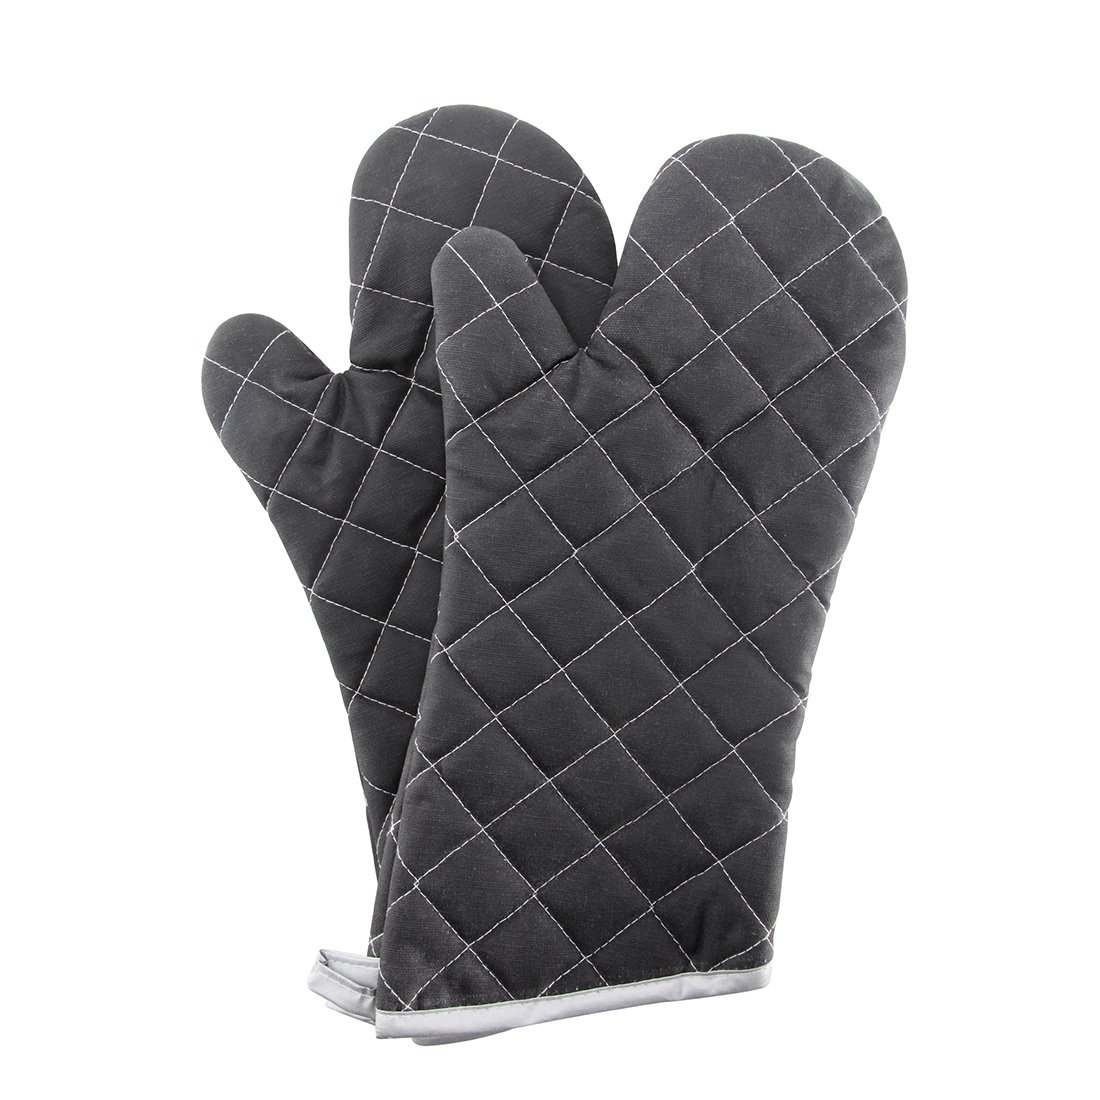 Oven Mitts Flame Retardant Mitts Heat Resistant to 425° F 15 Inch Black Color 2-pack